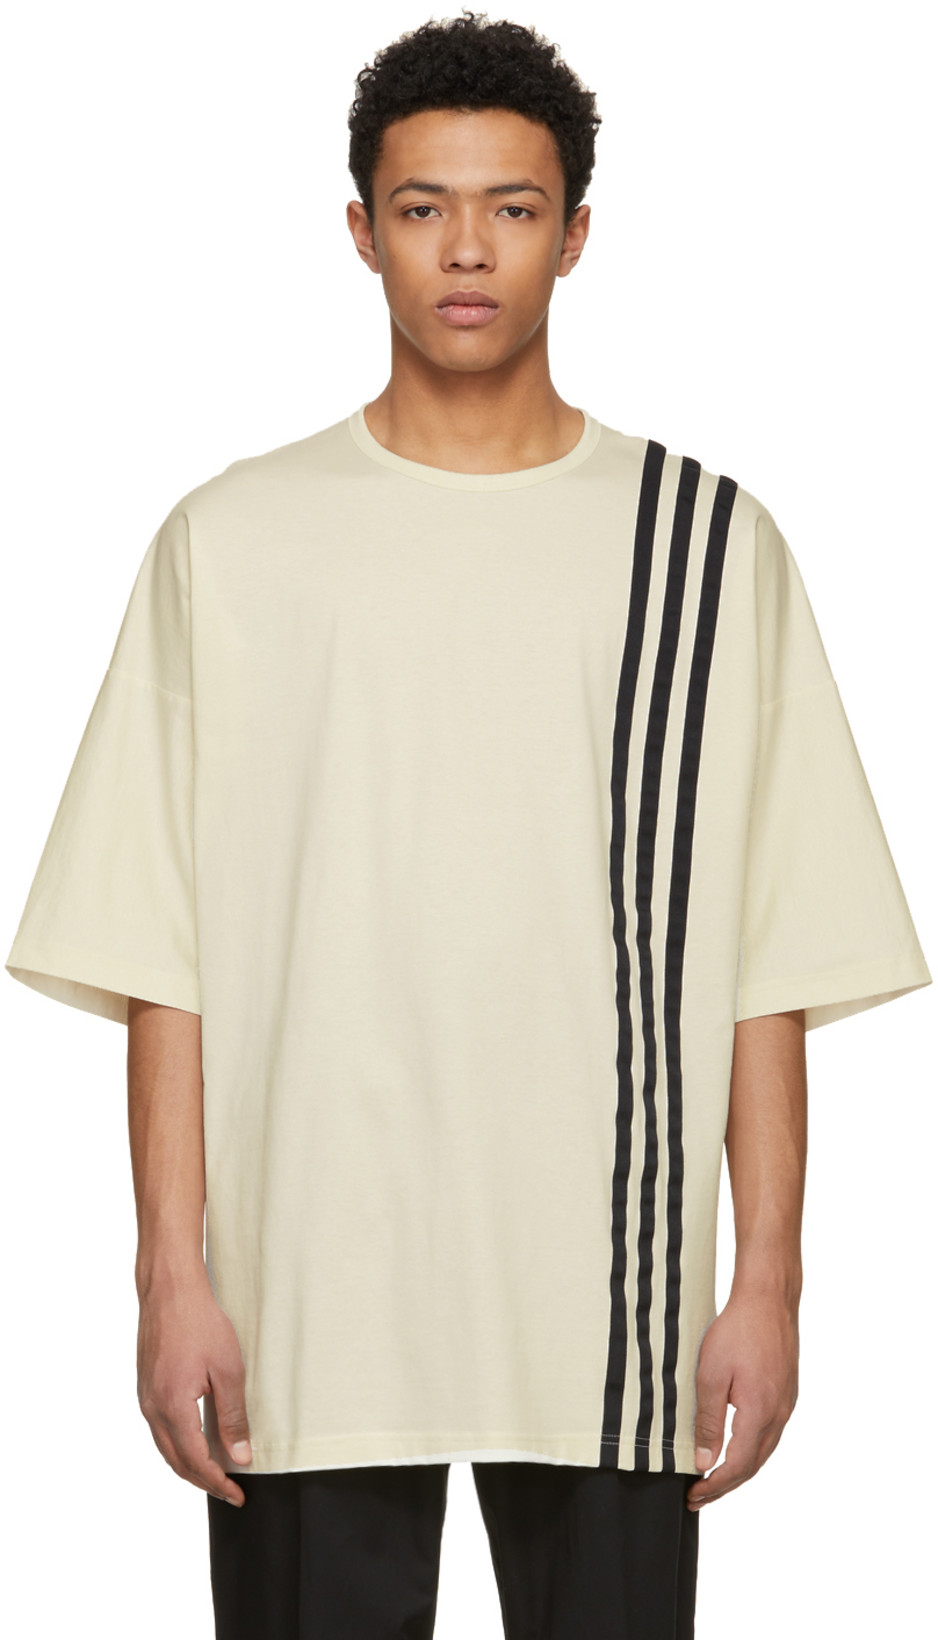 Y-3 - Off-White 3-Stripes T-ShirtIf you're really into the whole oversized tees and sportswear style, this tee will give you both elements.  Style this tee with some AKINGSNY Jameson raw denim for a modern-avant-garde look.